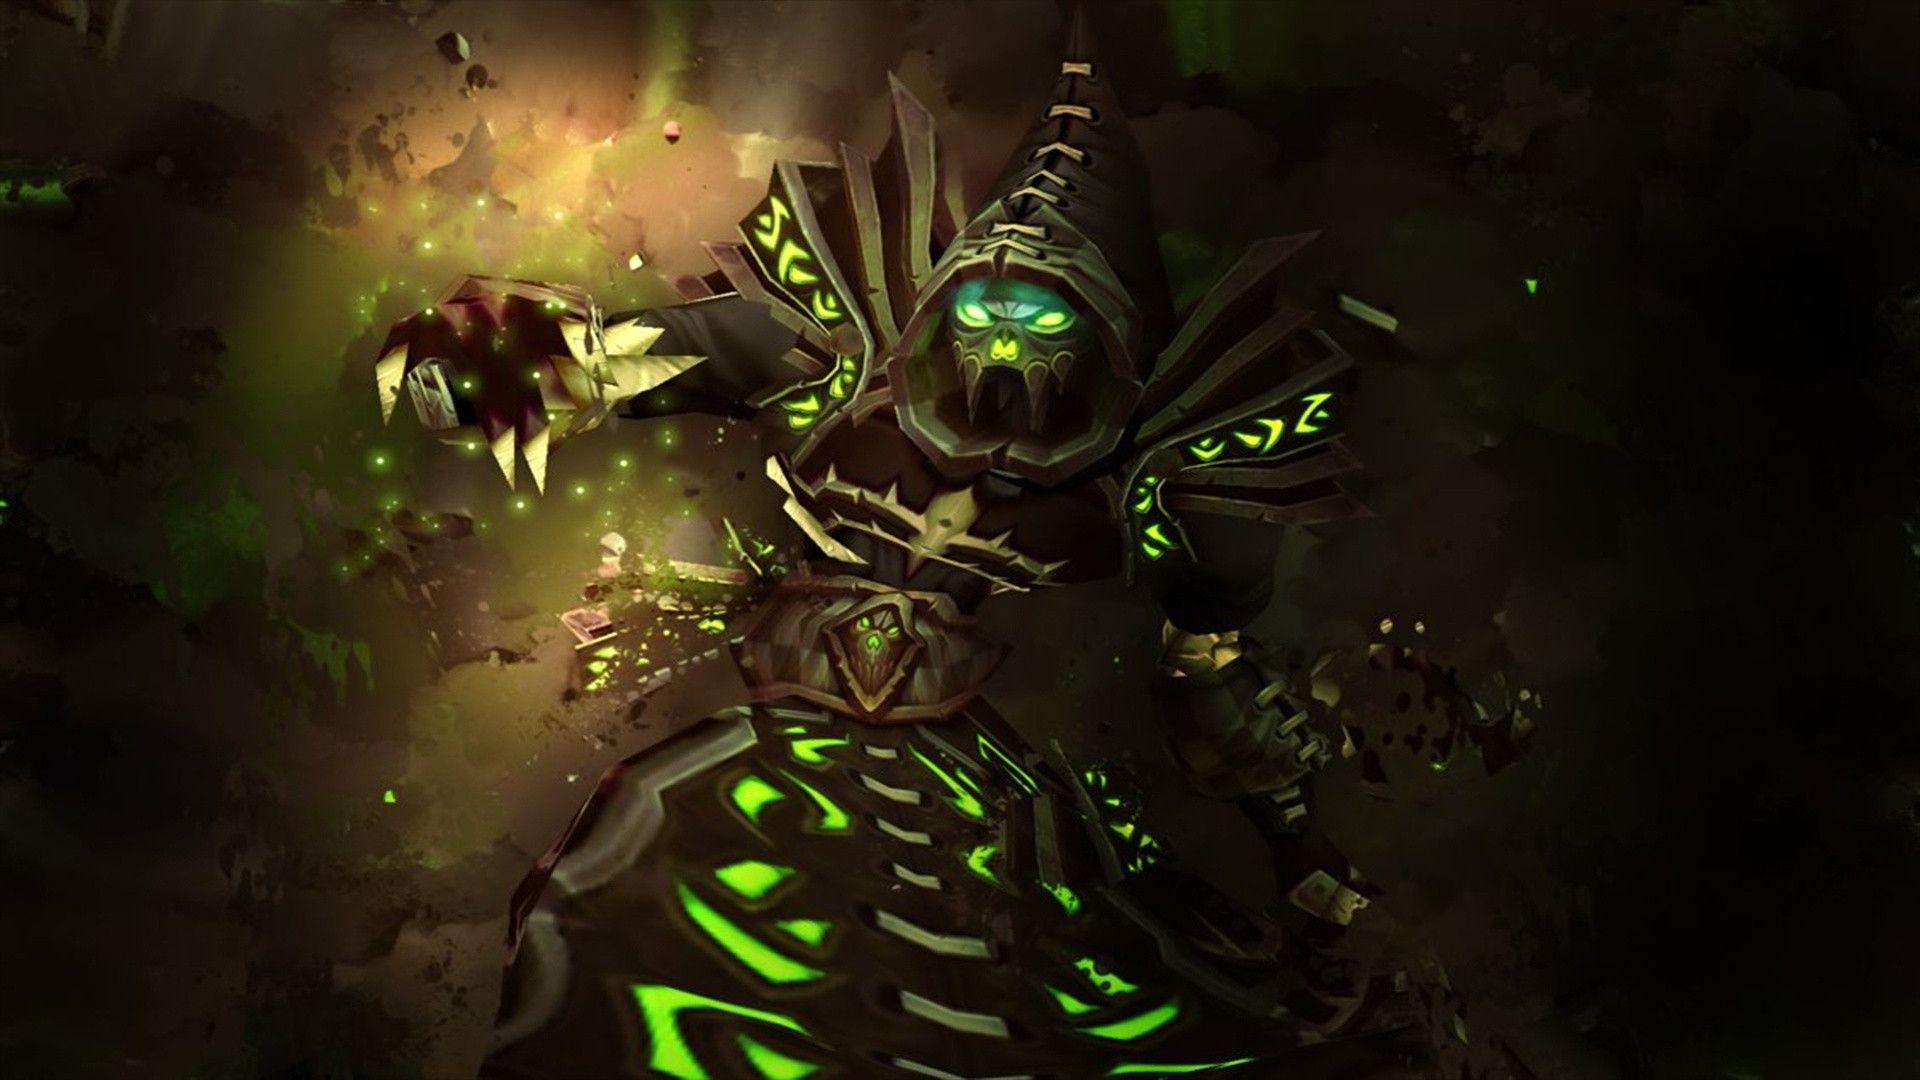 Download Mobile Wallpaper Games Background World Of WarCraft 1920x1080